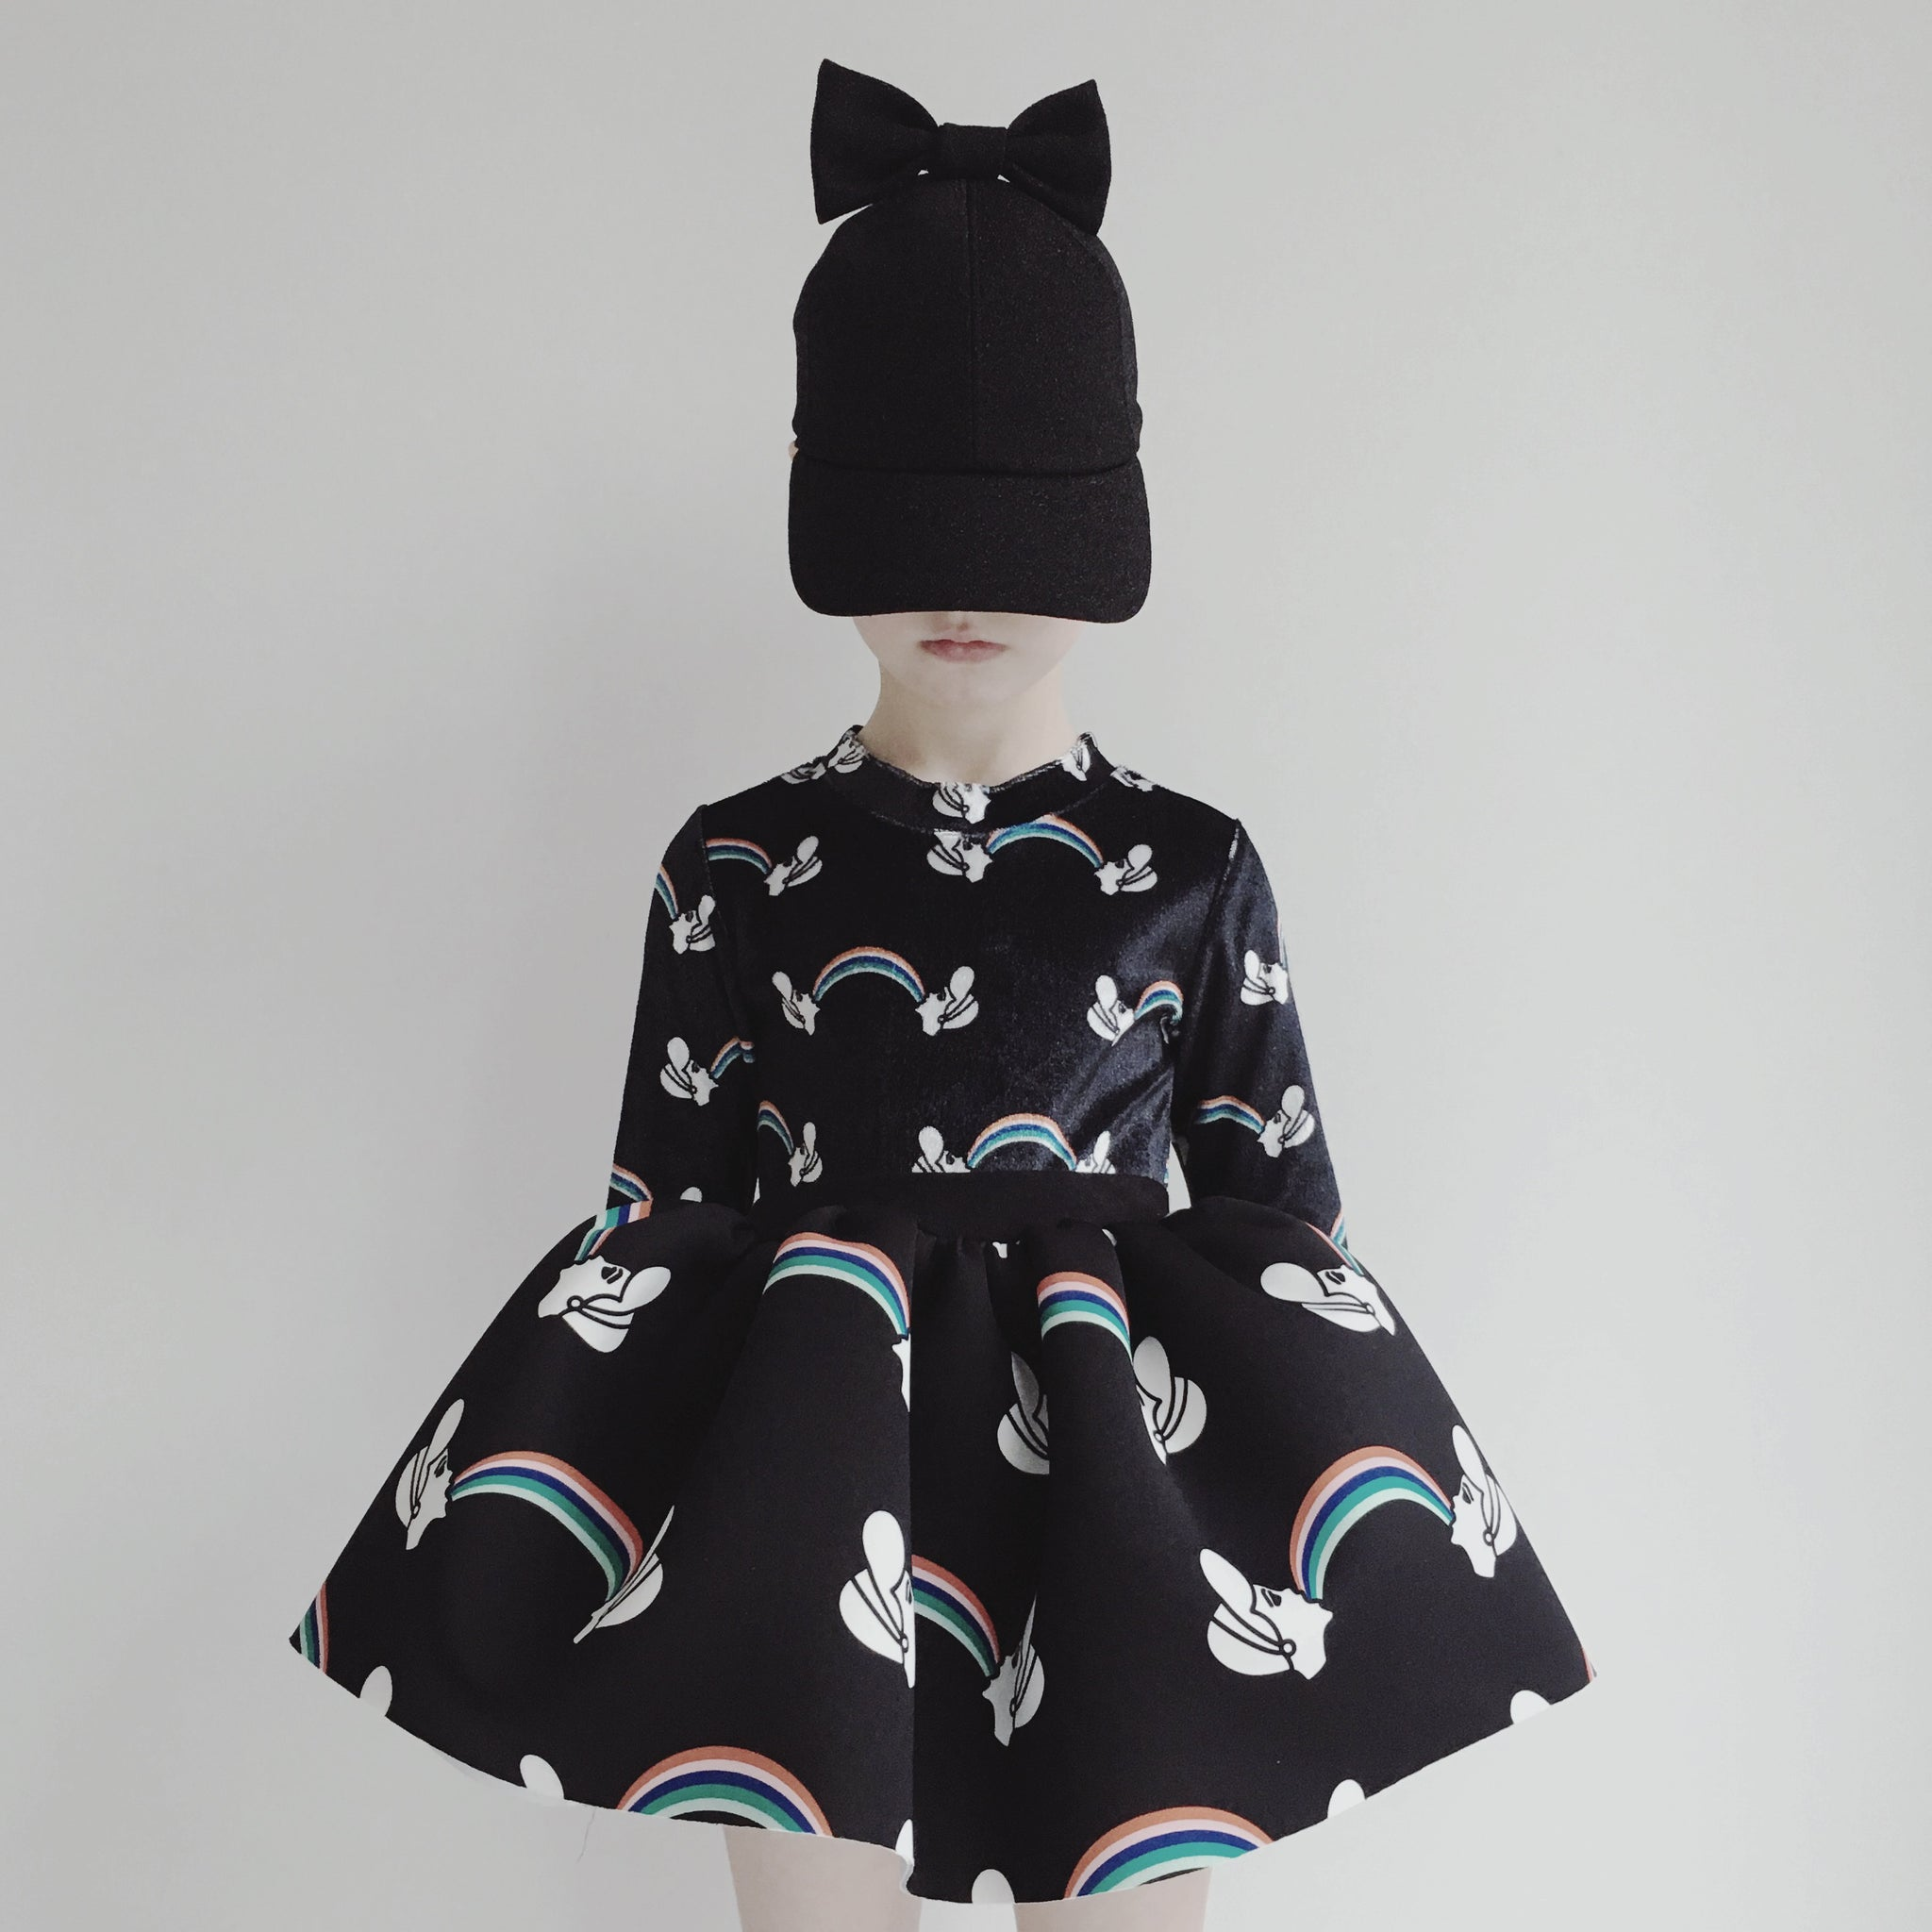 Printed miniskirt - Rainbow Princess Black